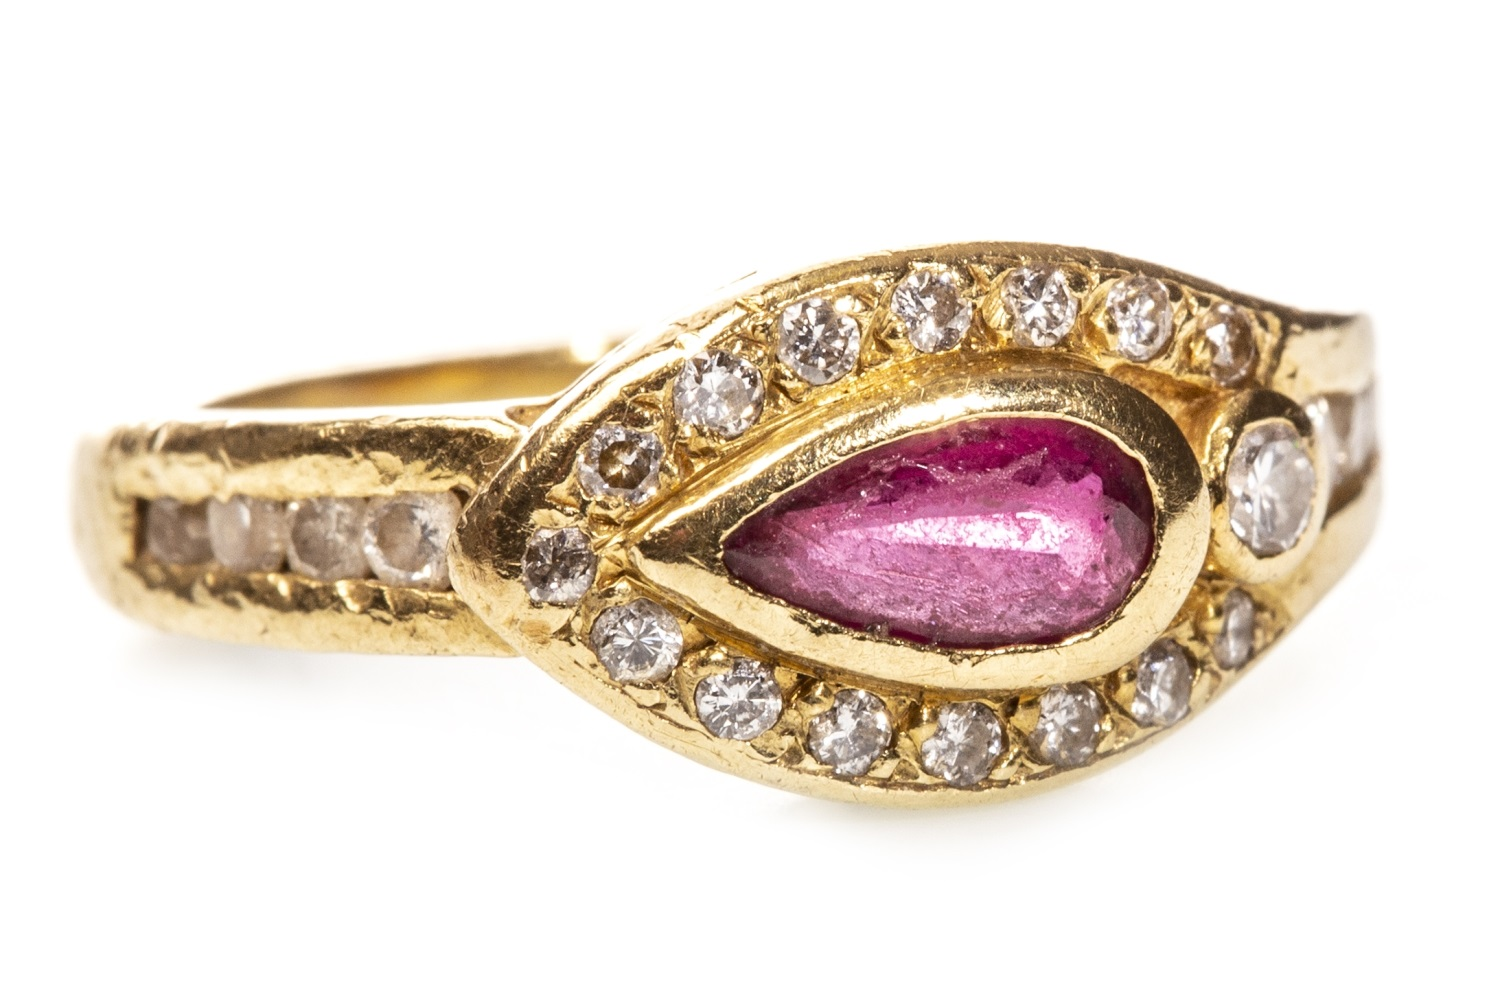 Lot 86 - A RED GEM AND DIAMOND RING